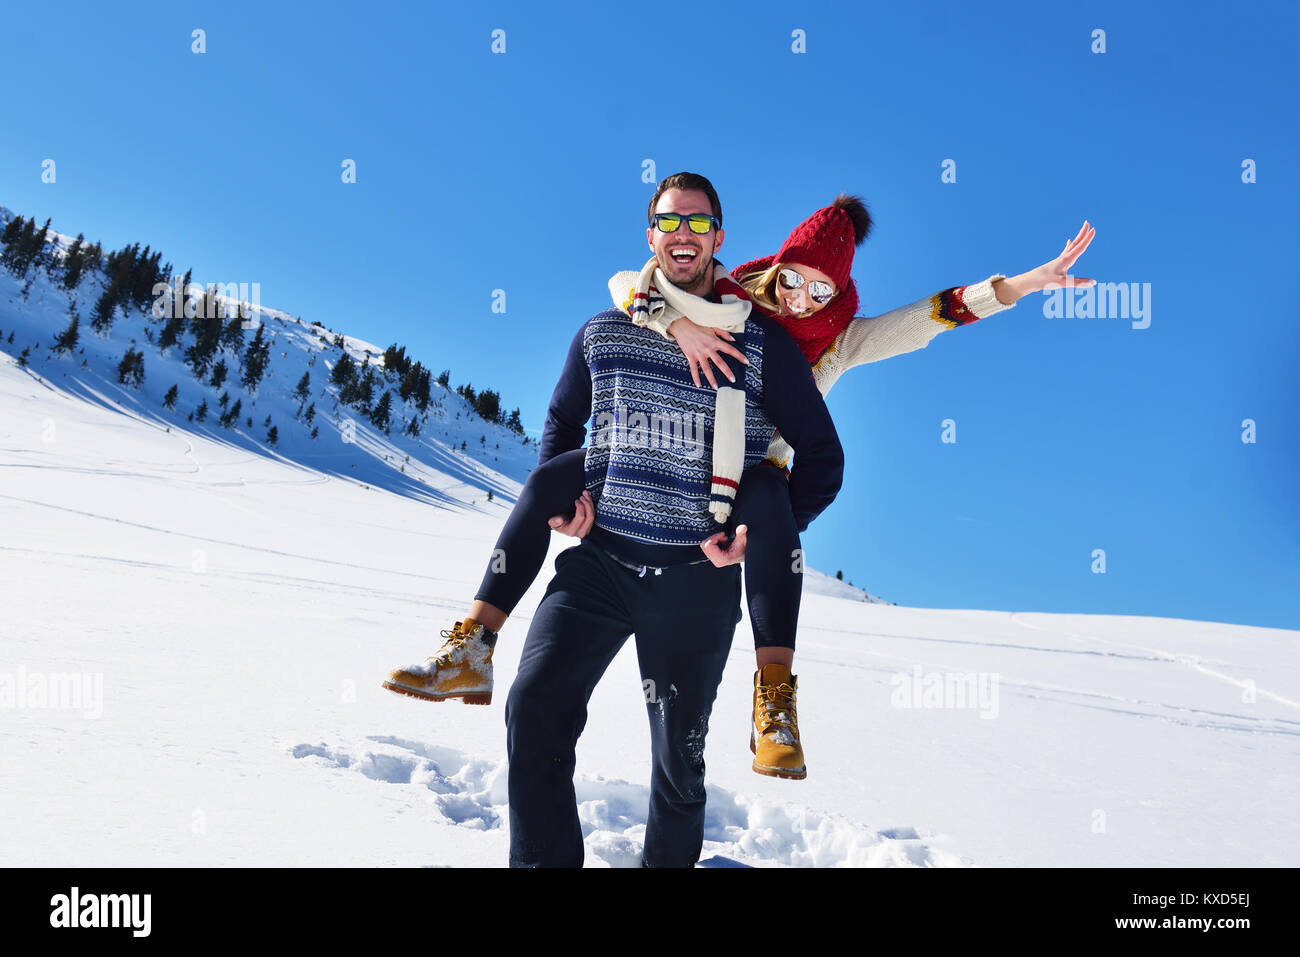 Young couple having fun sur la neige. Heureux l'homme à la montagne donnant à son piggyback ride smiling Photo Stock